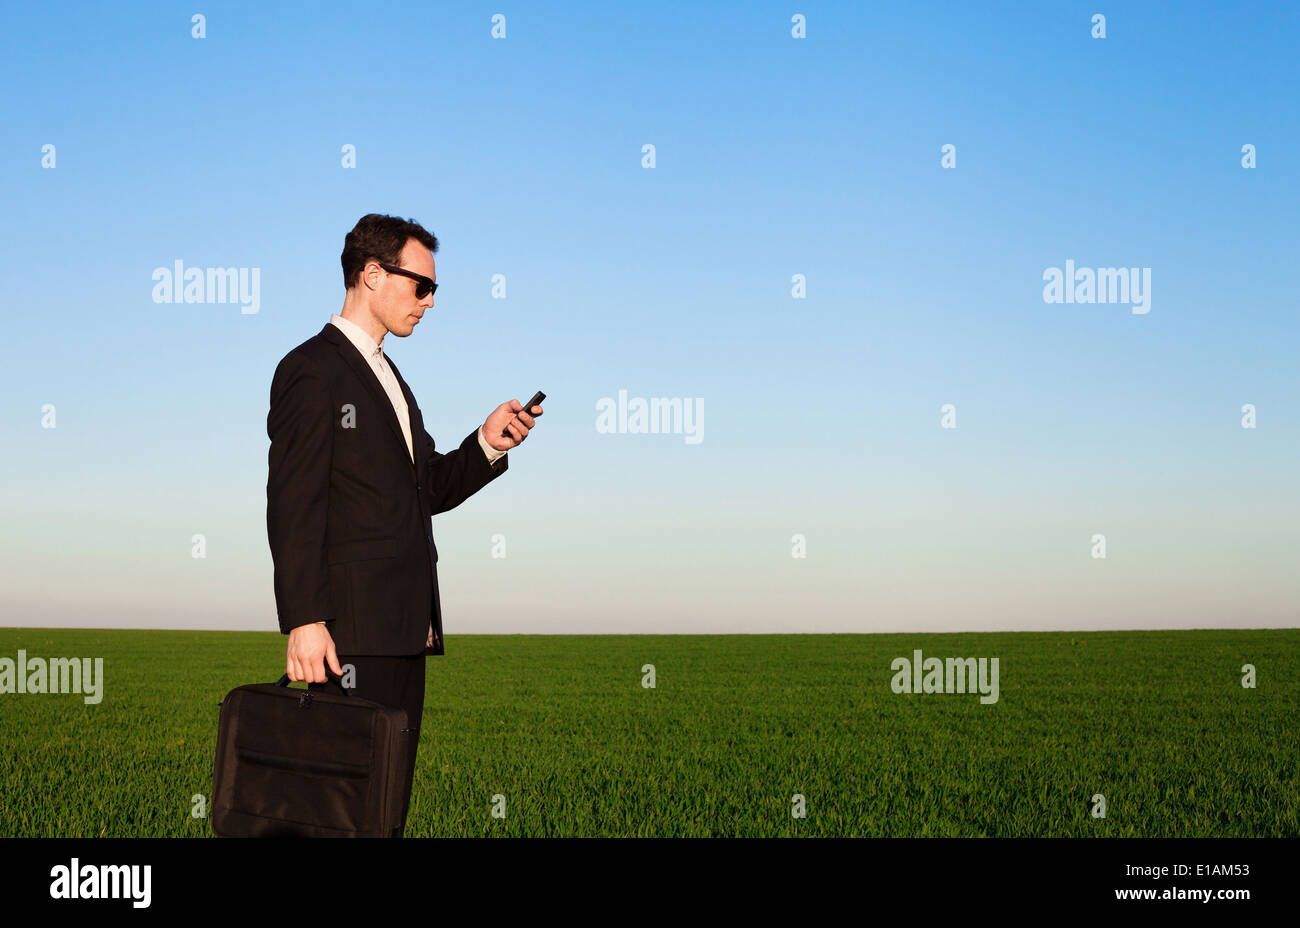 businessman with smartphone in green field - Stock Image